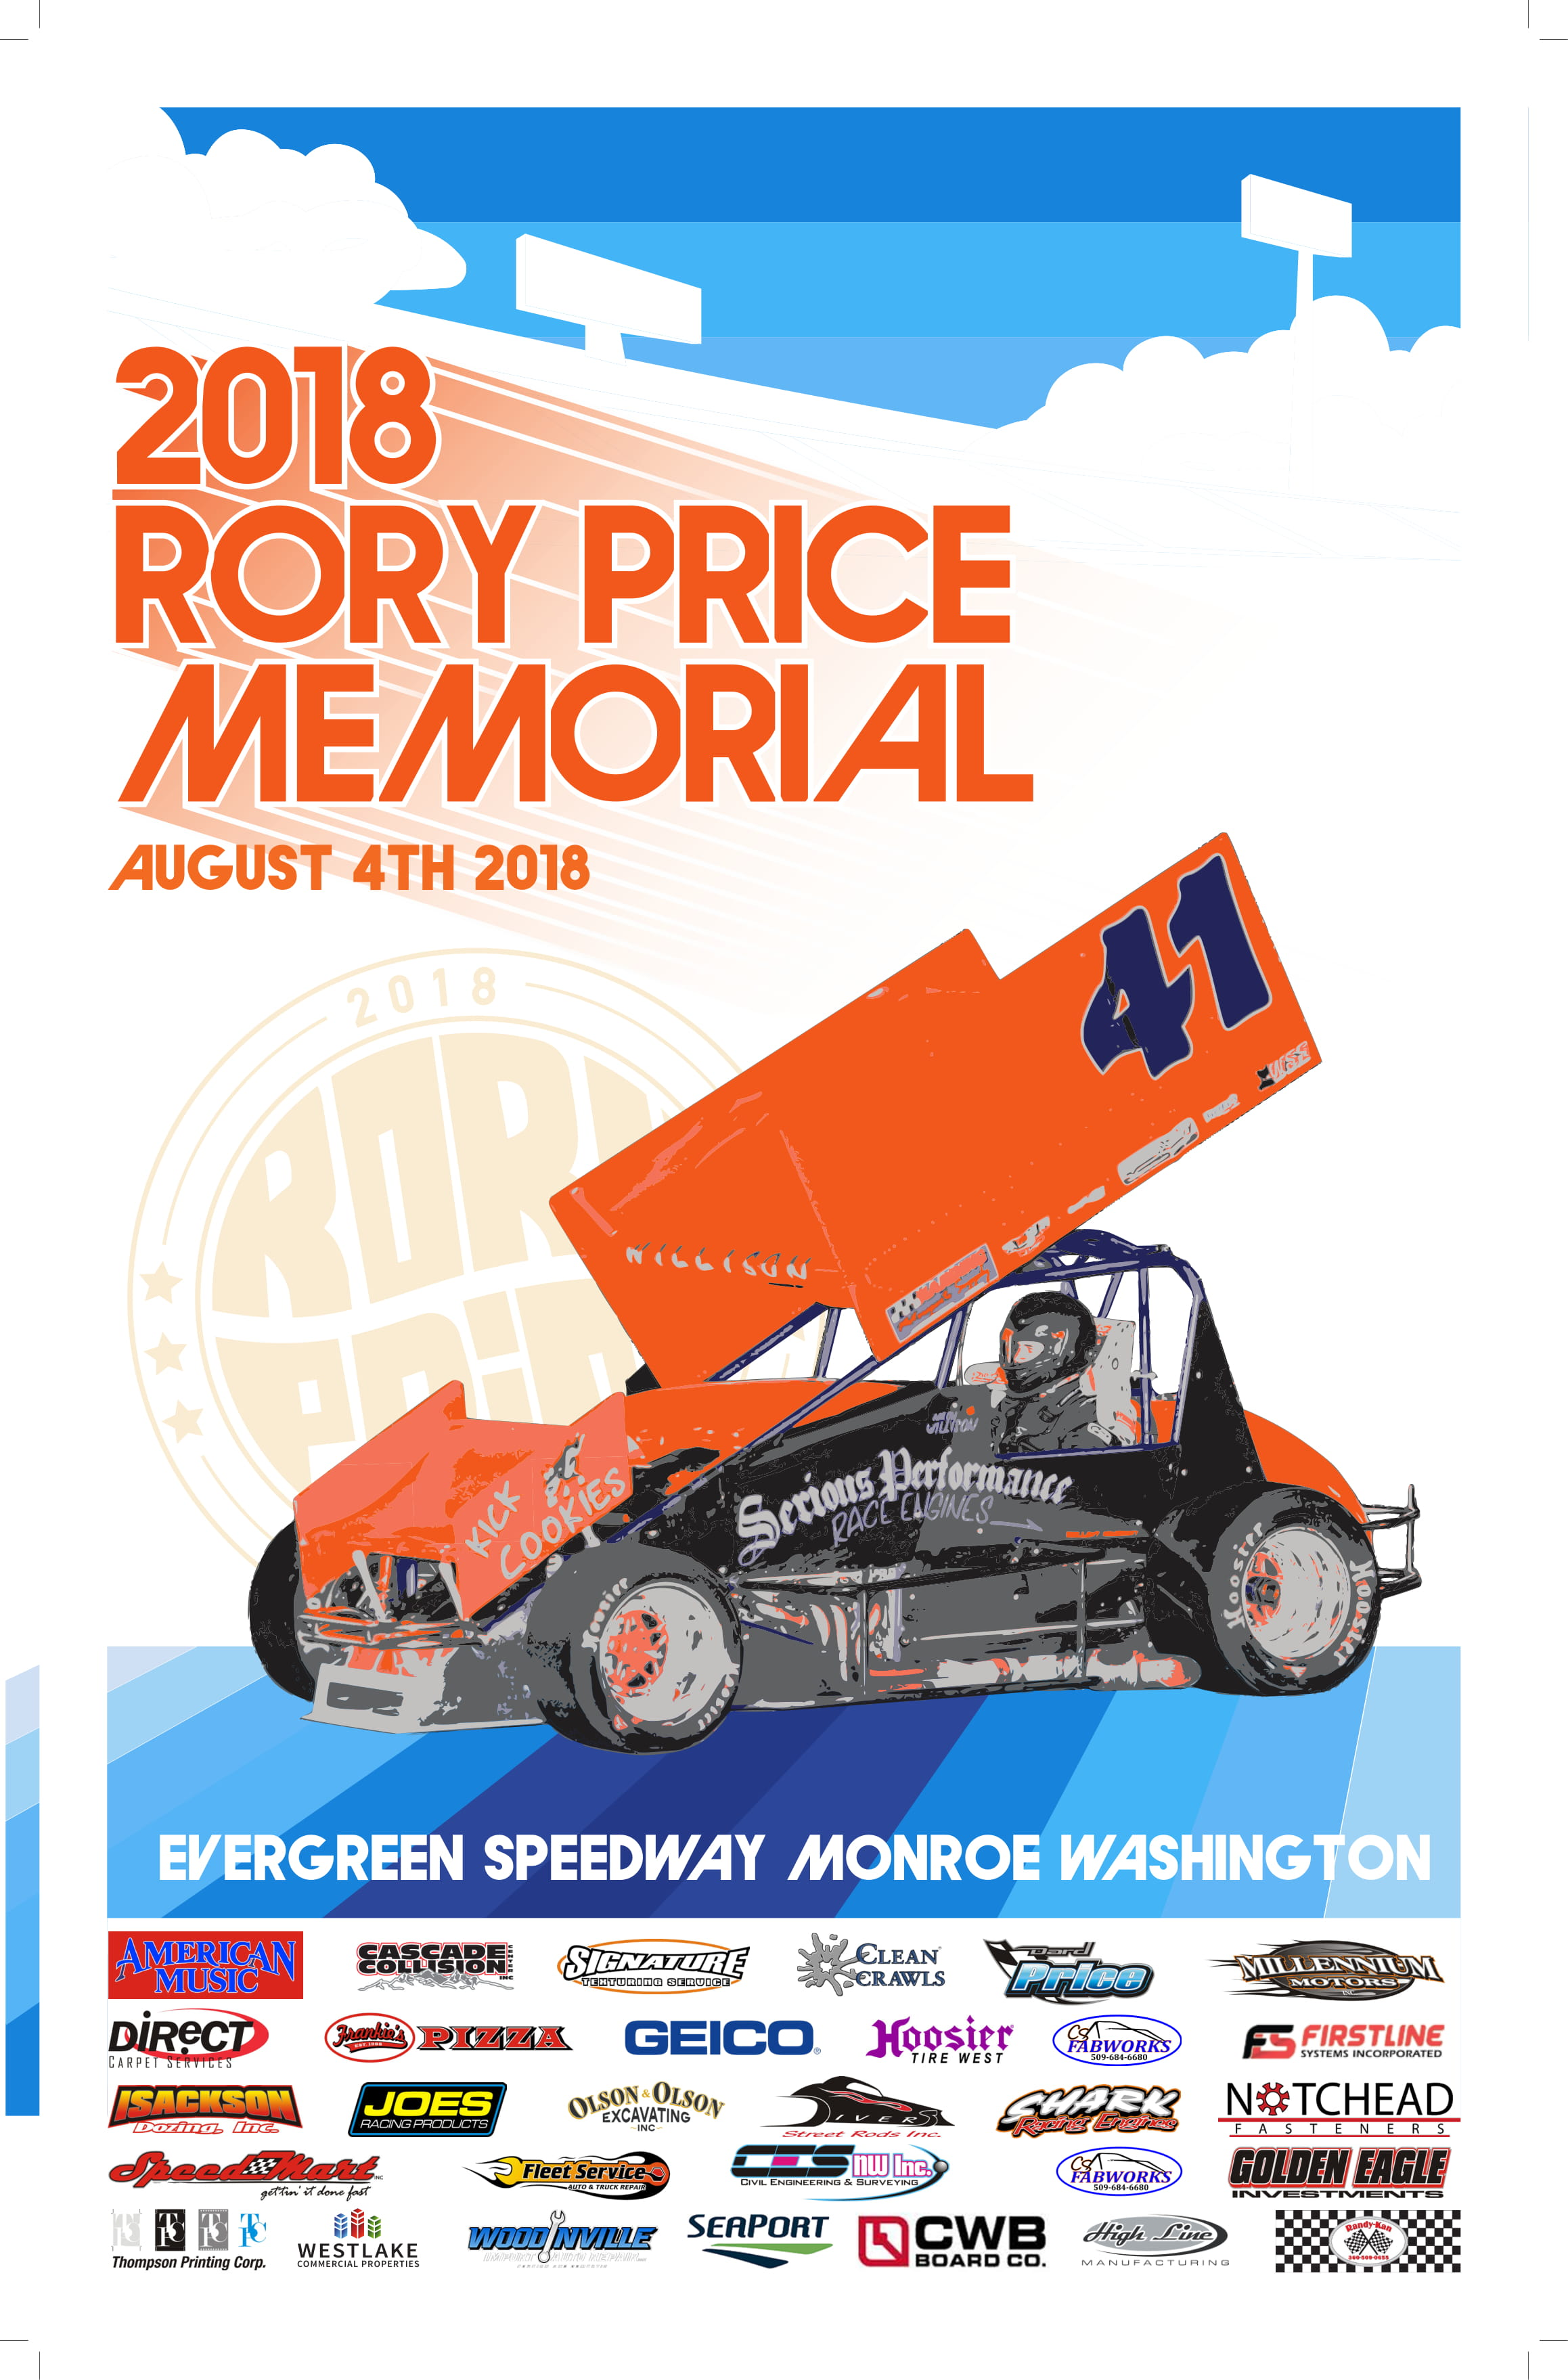 Saturday August 4th Rory Price Memorial Next For NSRA Series; Practice Friday Night